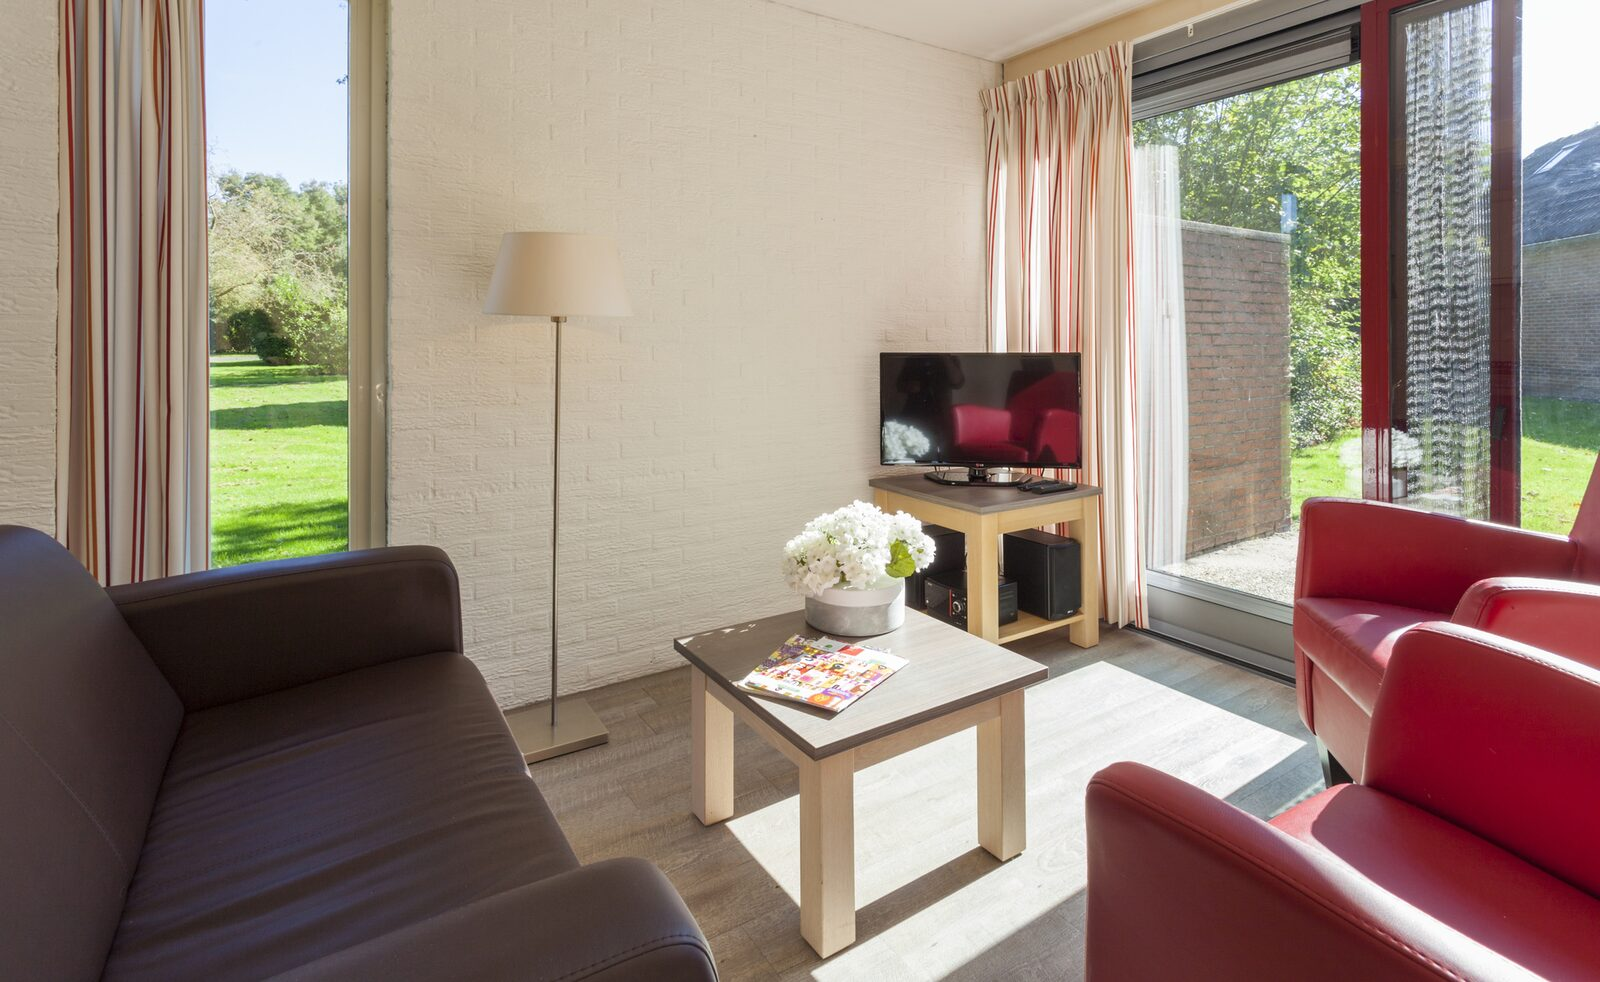 Four-person Bungalow IJssel Comfort